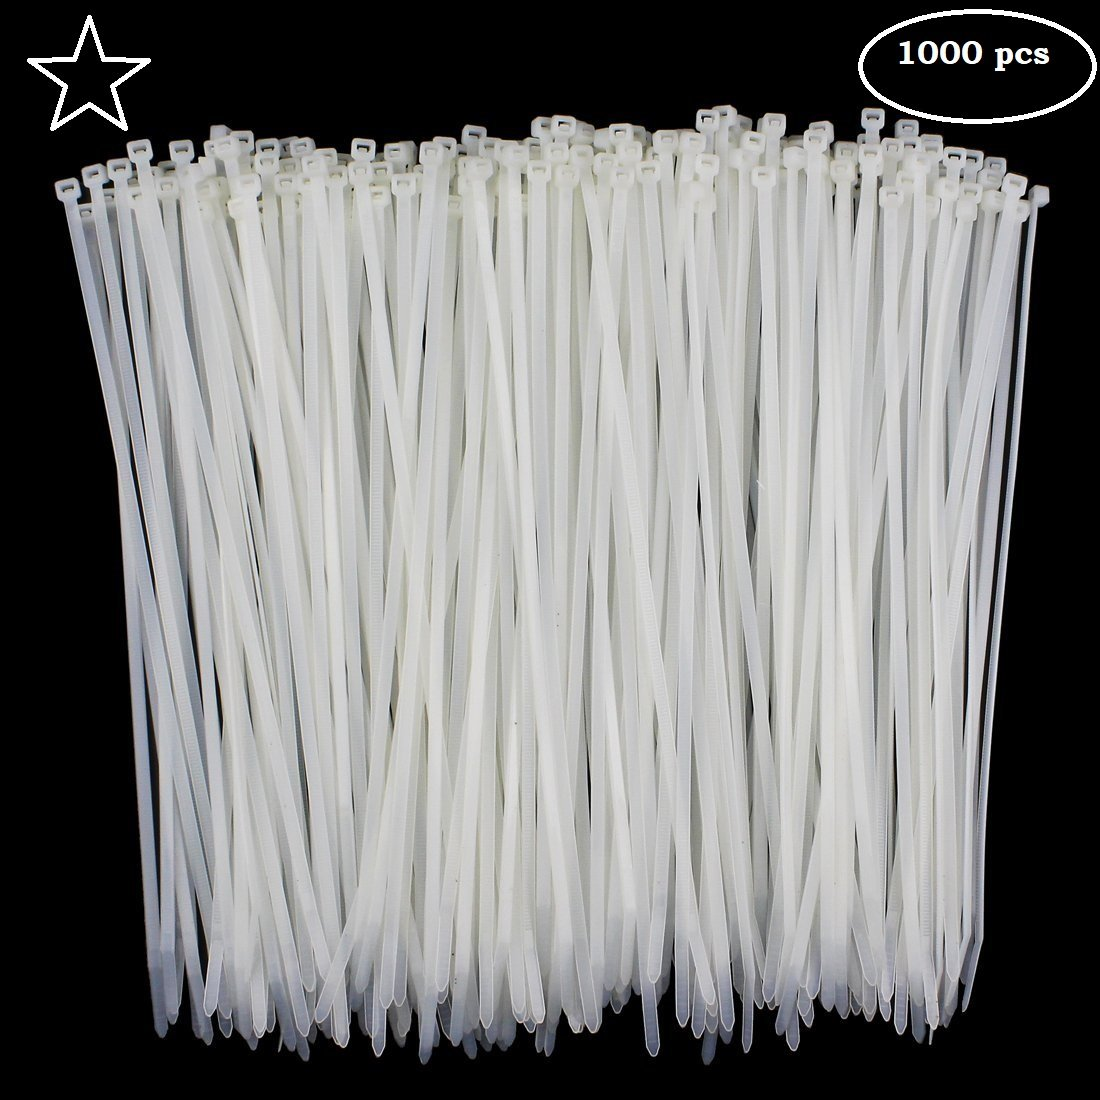 ATC USA - Cable Ties 4 Inch (Pack of 1000) White Nylon Zip Wire Wrap Heavy Duty Self Locking Plastic Cable Management RG6 RG59 CAT5 CAT6 RJ45 Electrical Ethernet Dish TV Speaker Cord Tie Holder Clips